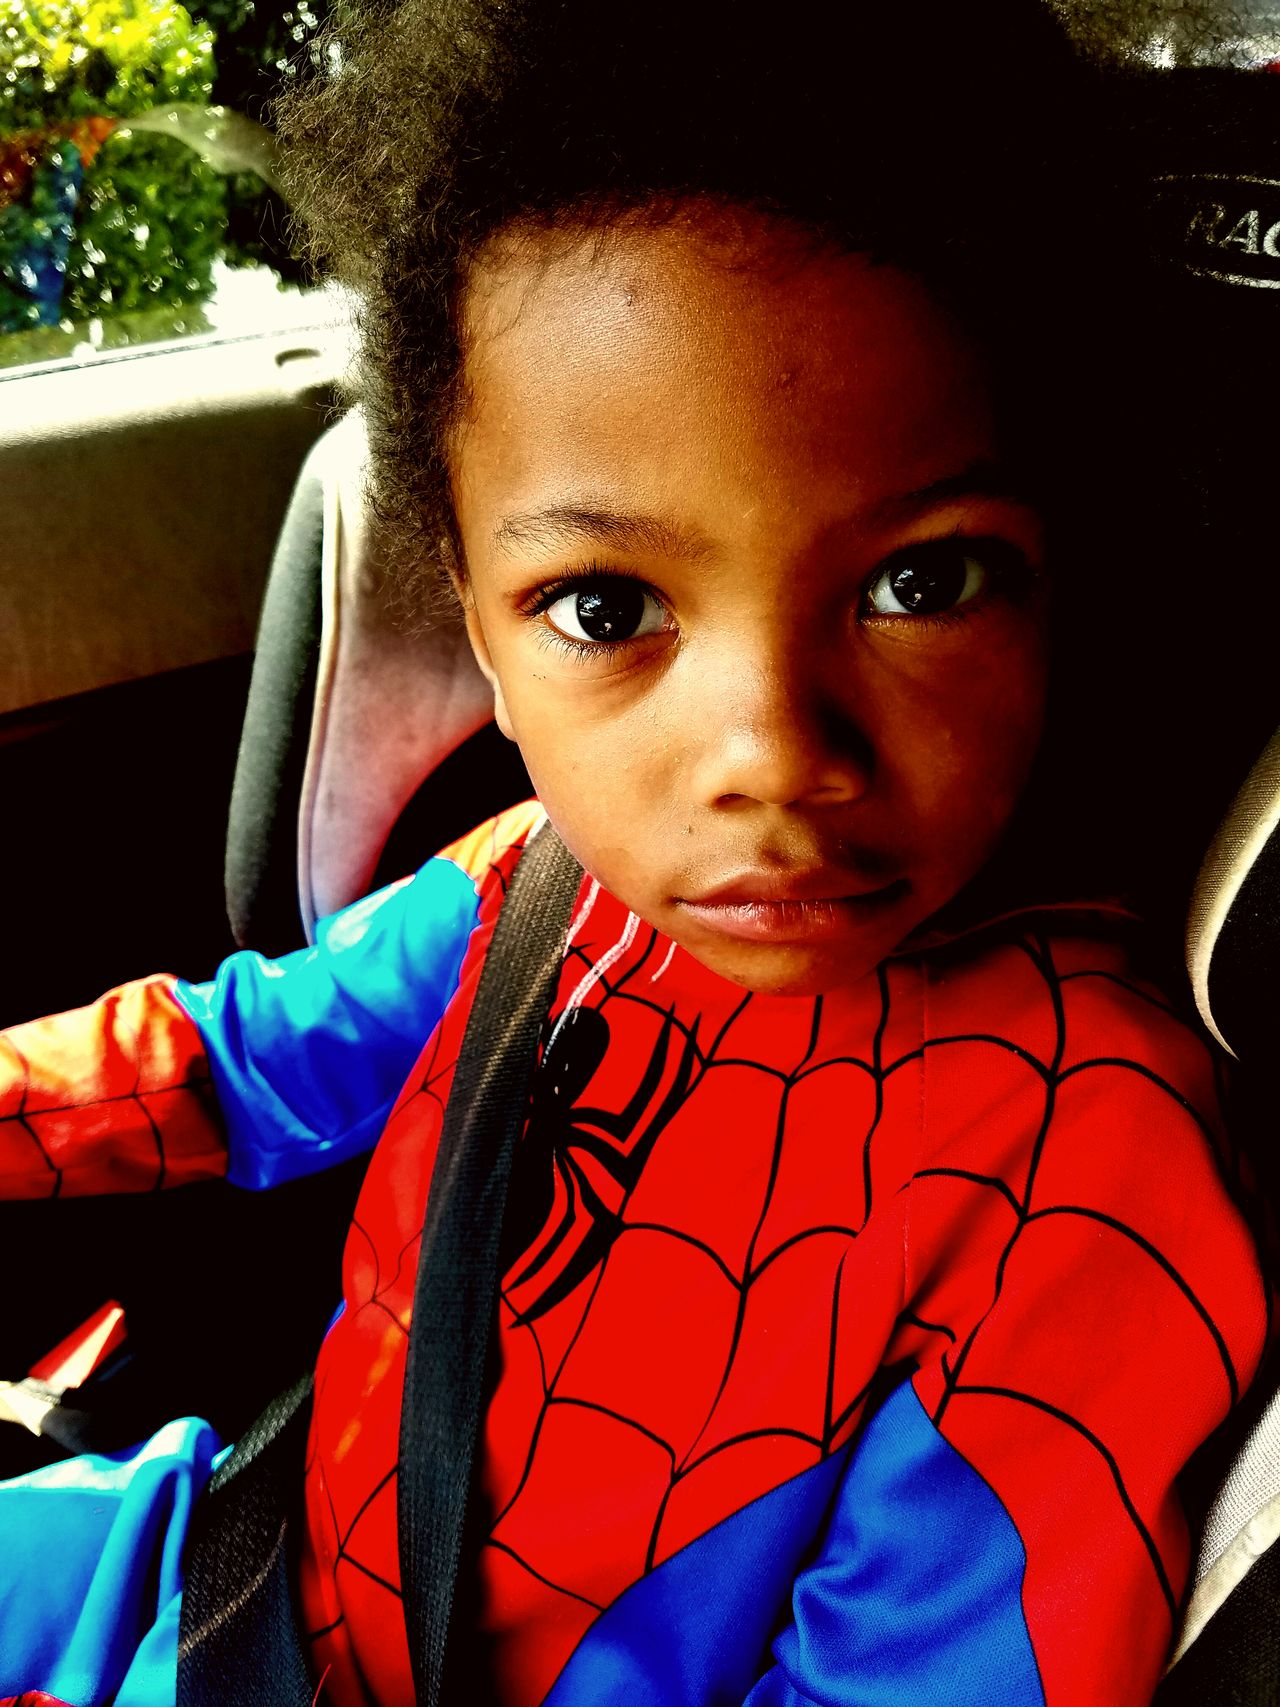 Serious Spider-Man Superhero Spiderman Children Serious Toddler  Passenger